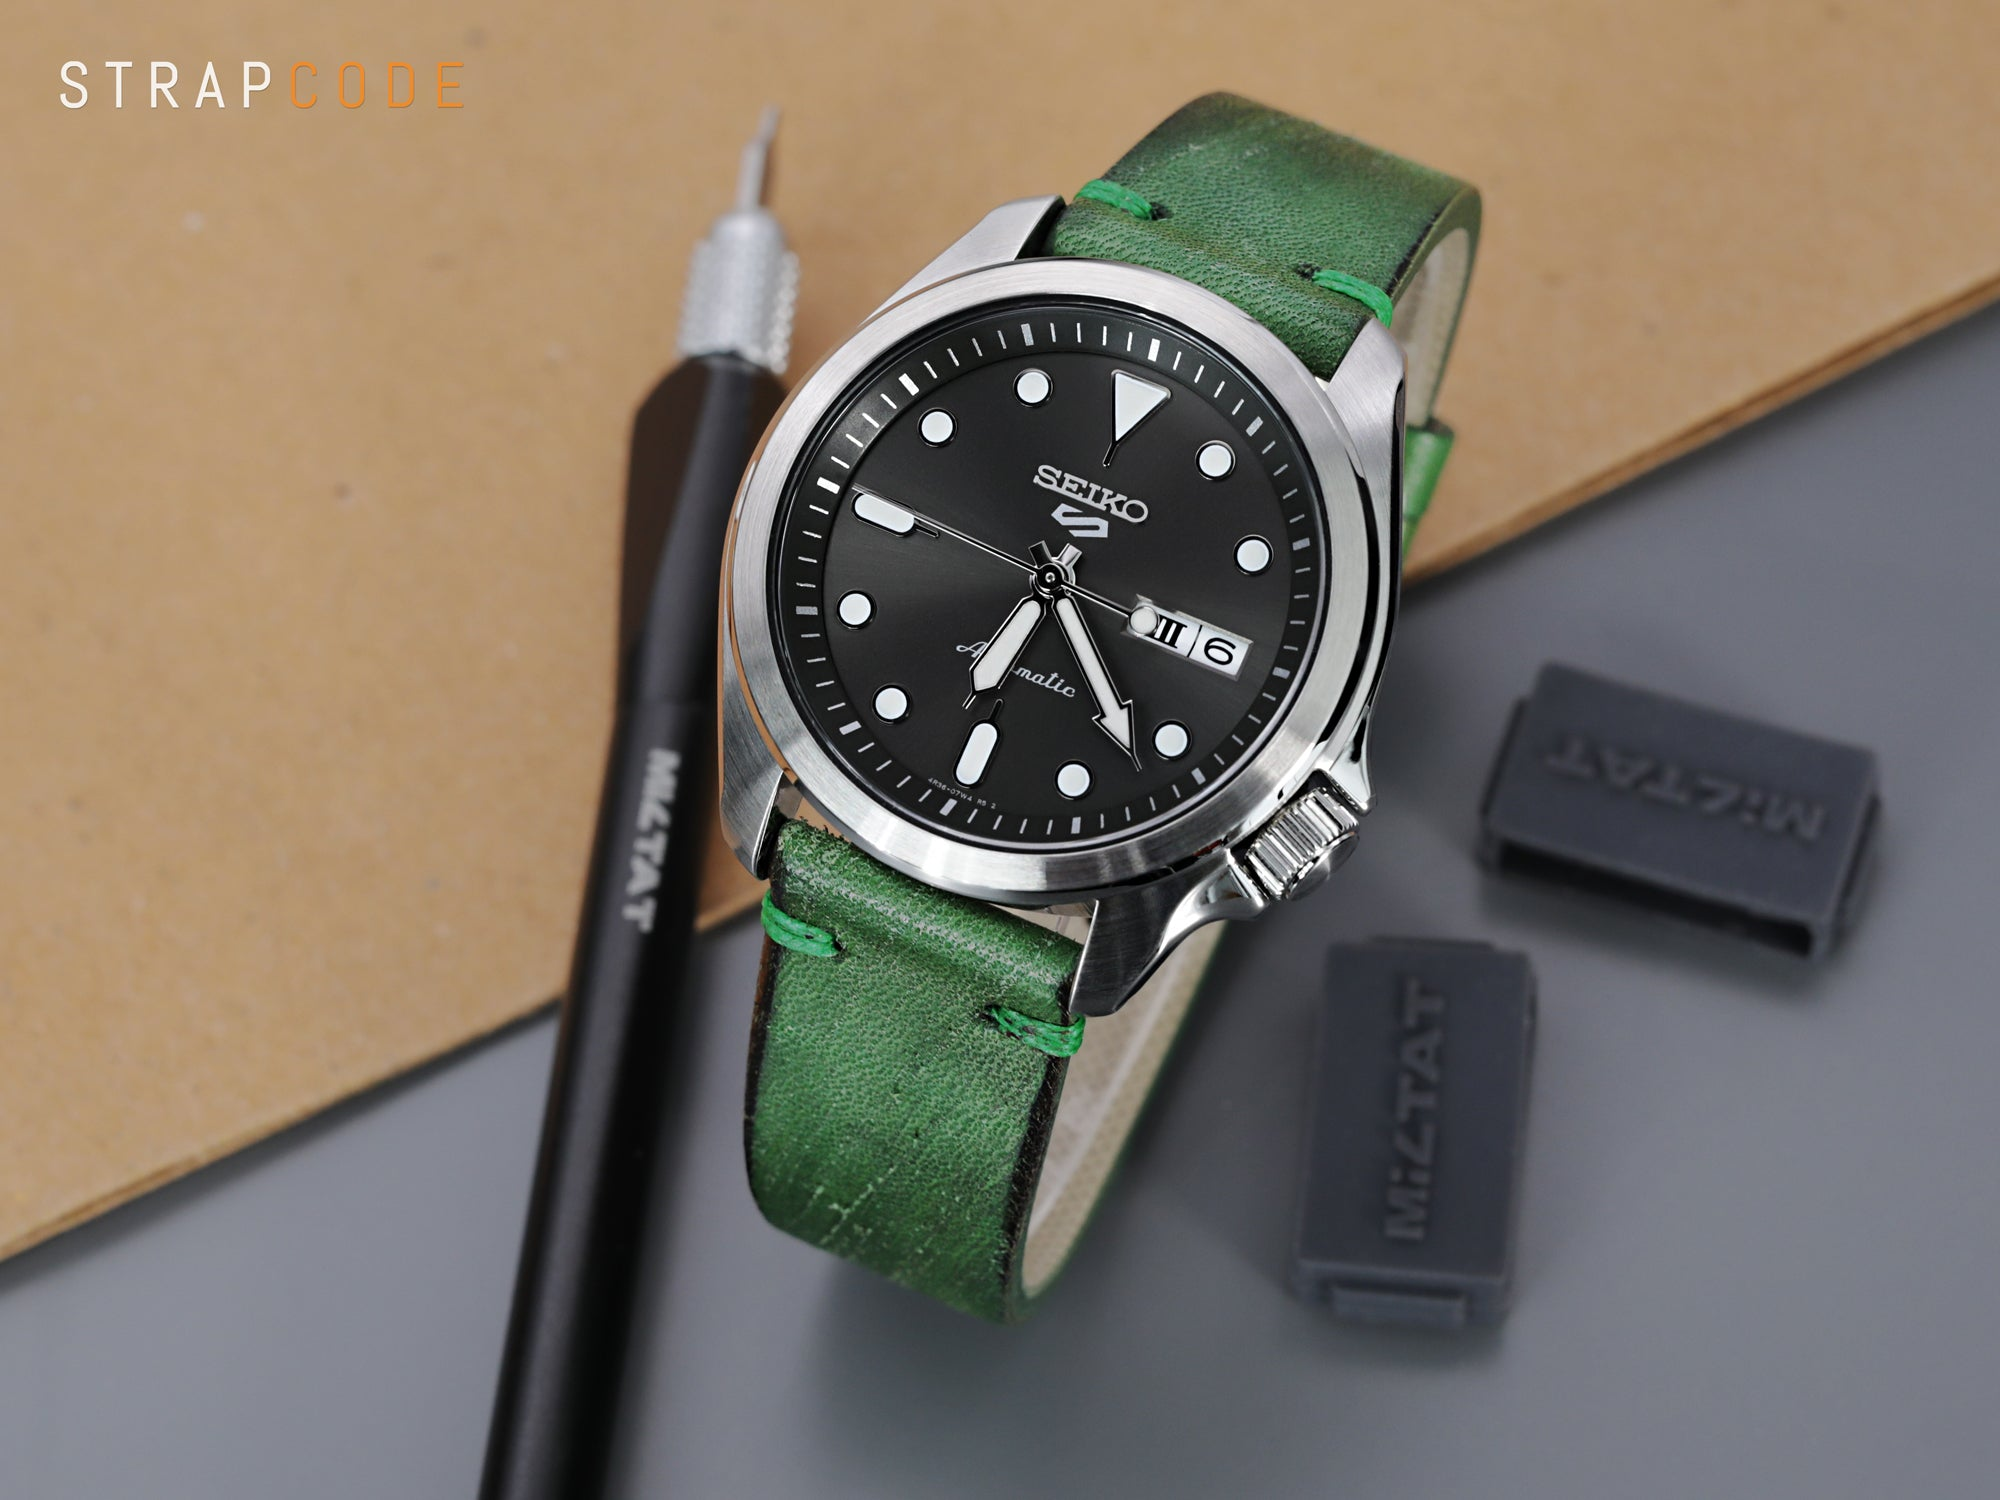 Rebel Green Italian Handmade Leather of Art Watch Band by Strapcode